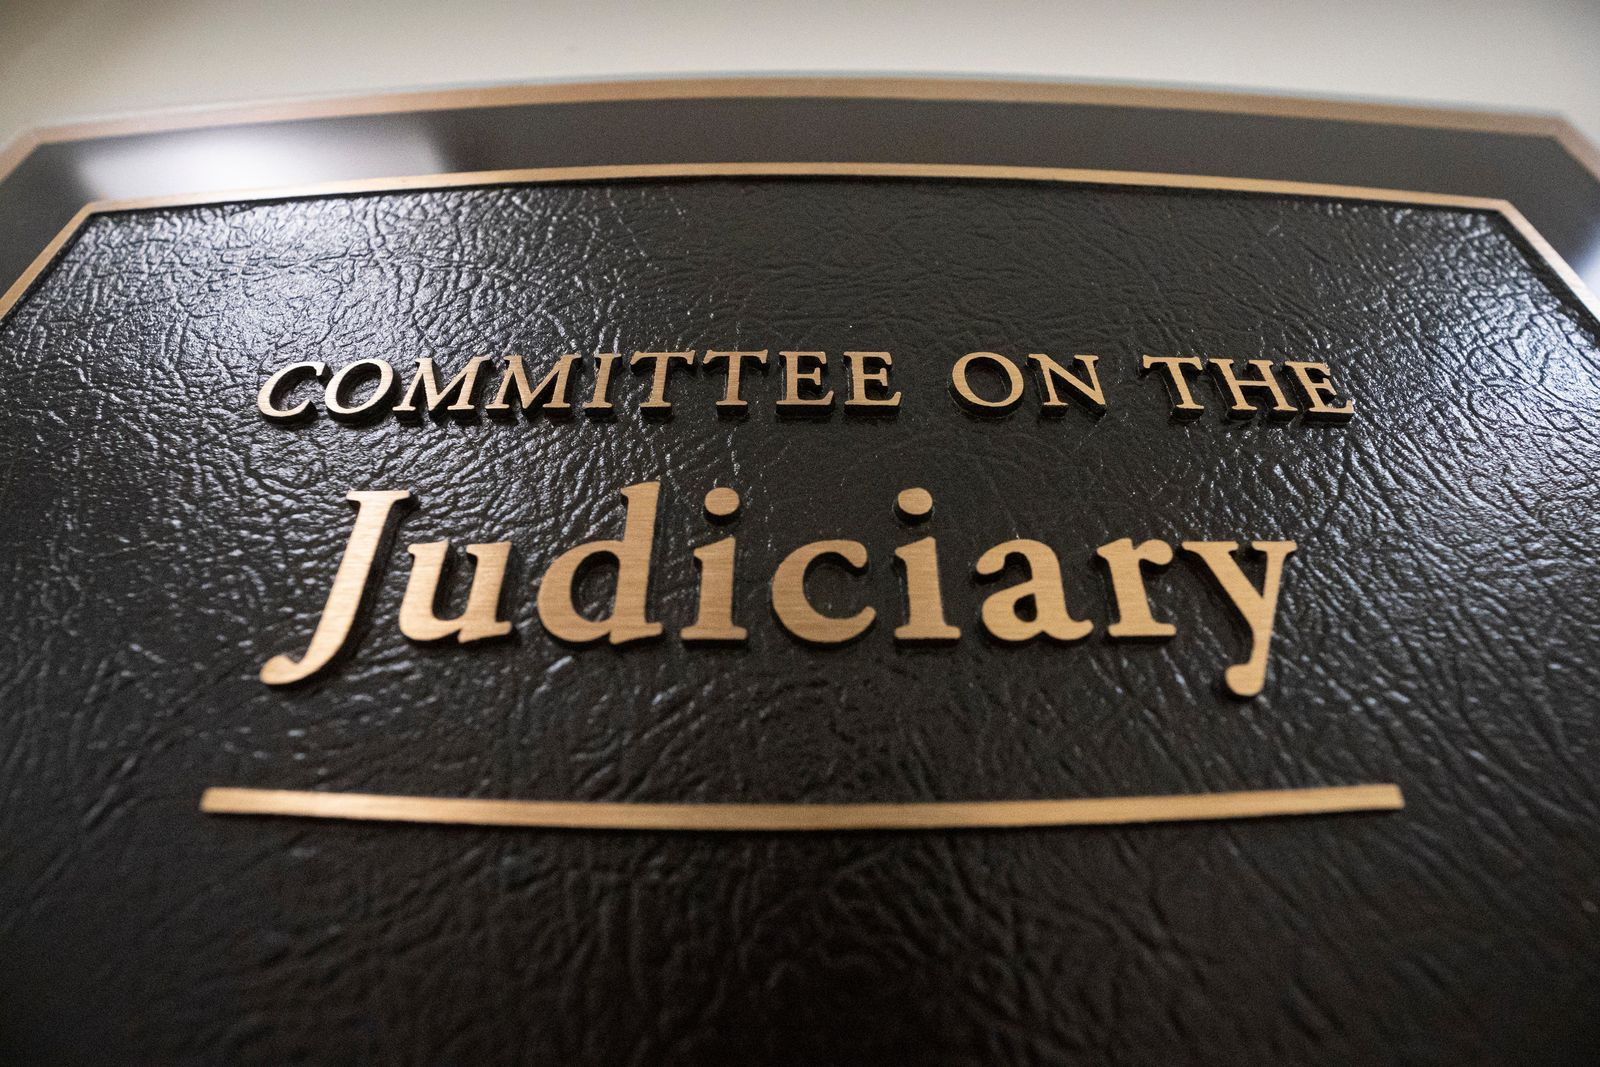 FILE - In this May 29, 2019 file photo, a sign at the office of the House Judiciary Committee is seen on Capitol Hill in Washington.{ } (AP Photo/J. Scott Applewhite)